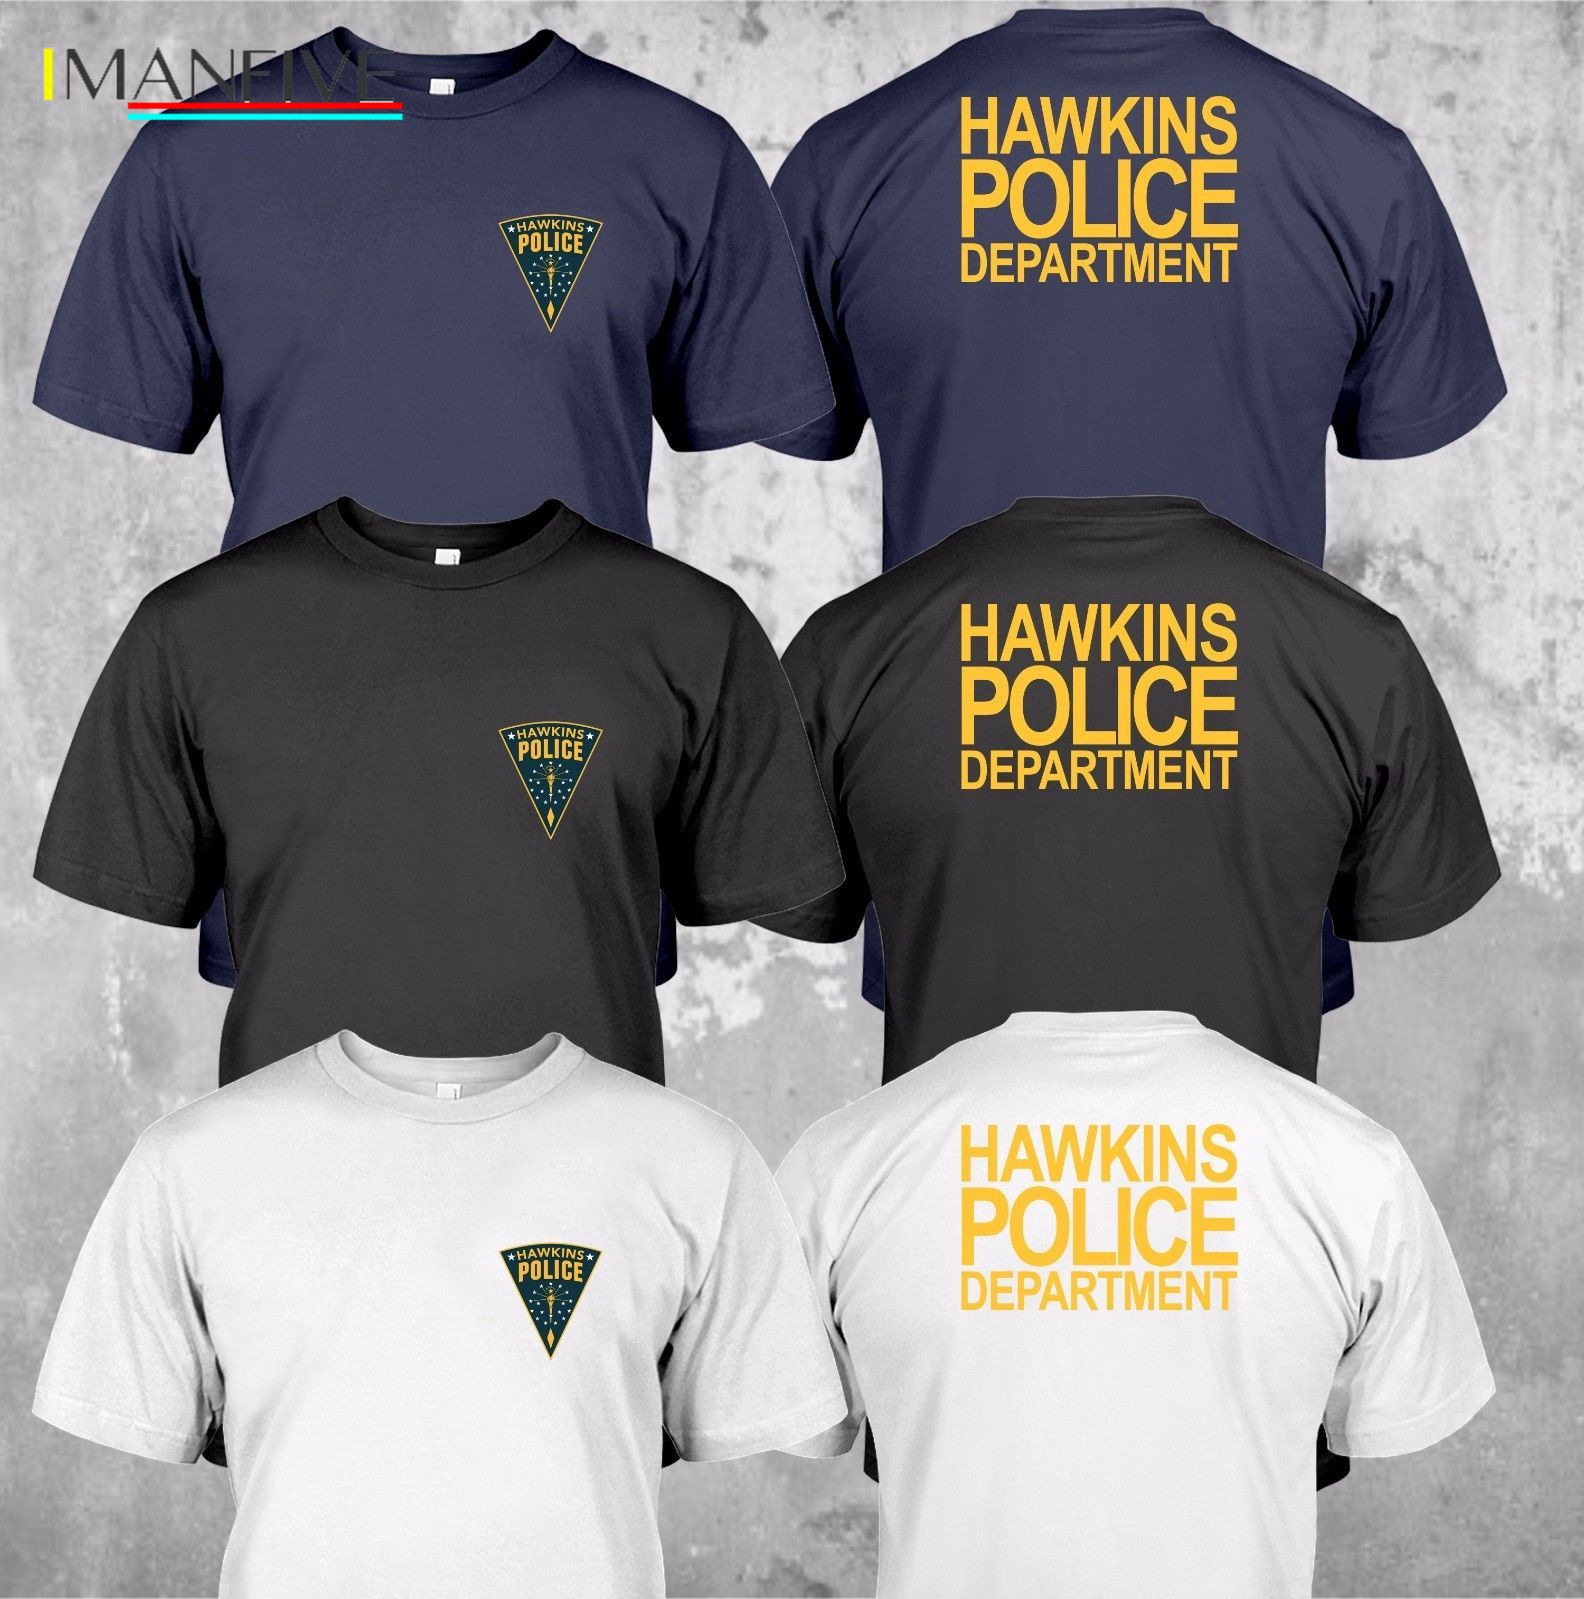 2019 NEW Hawkins Police Department State Logo Custom T Shirt Tee Summer Fashion Tee Shirt in T Shirts from Men 39 s Clothing